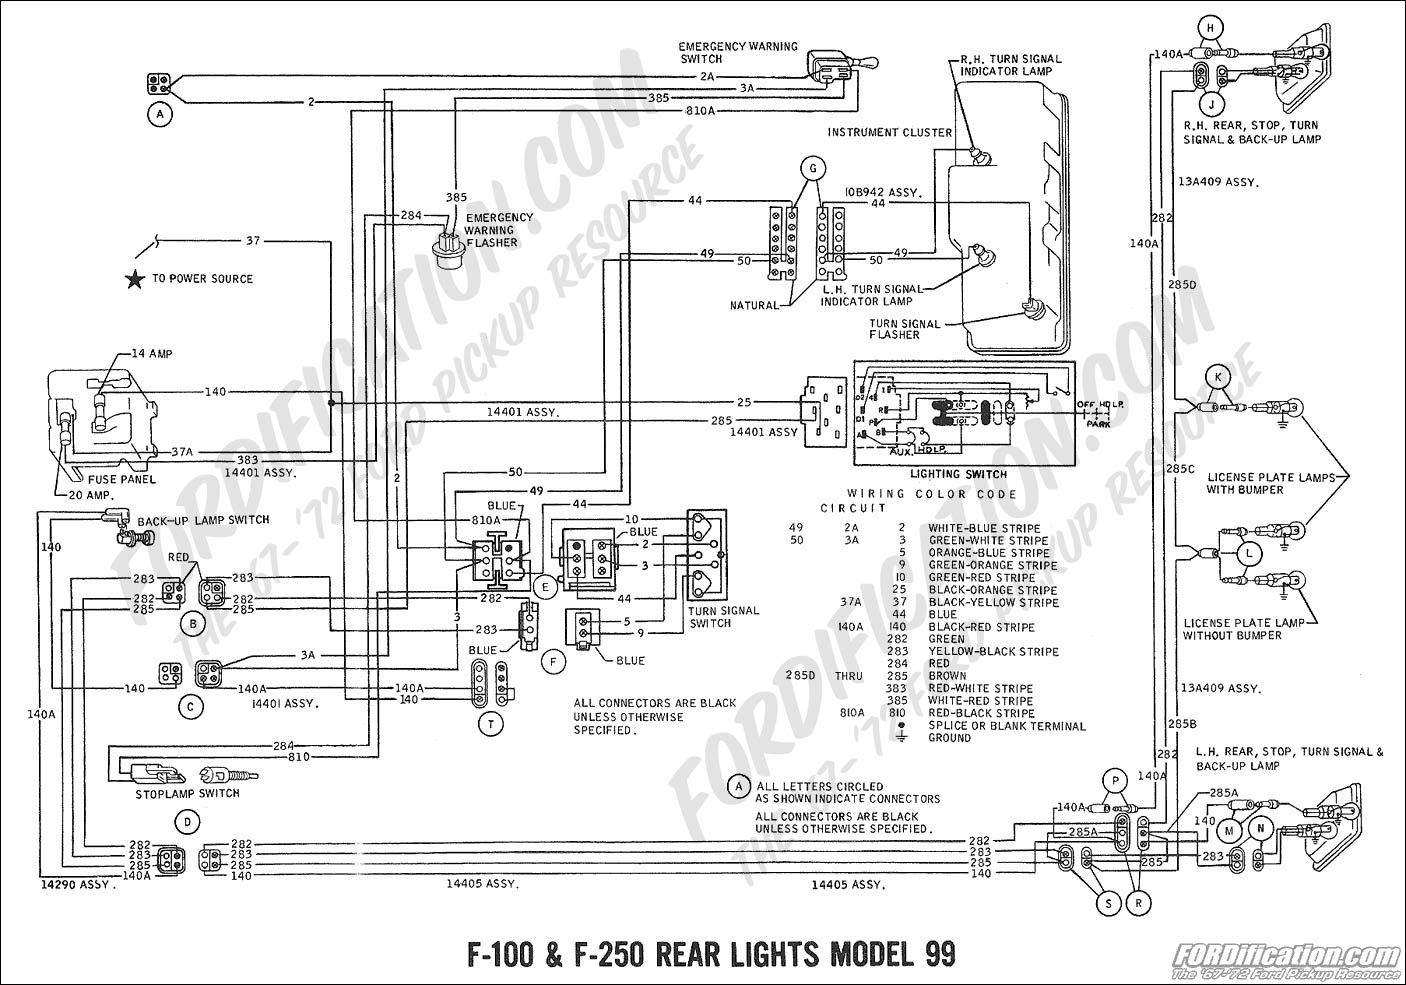 99 lexus gs300 engine diagram 99 honda crv engine diagram